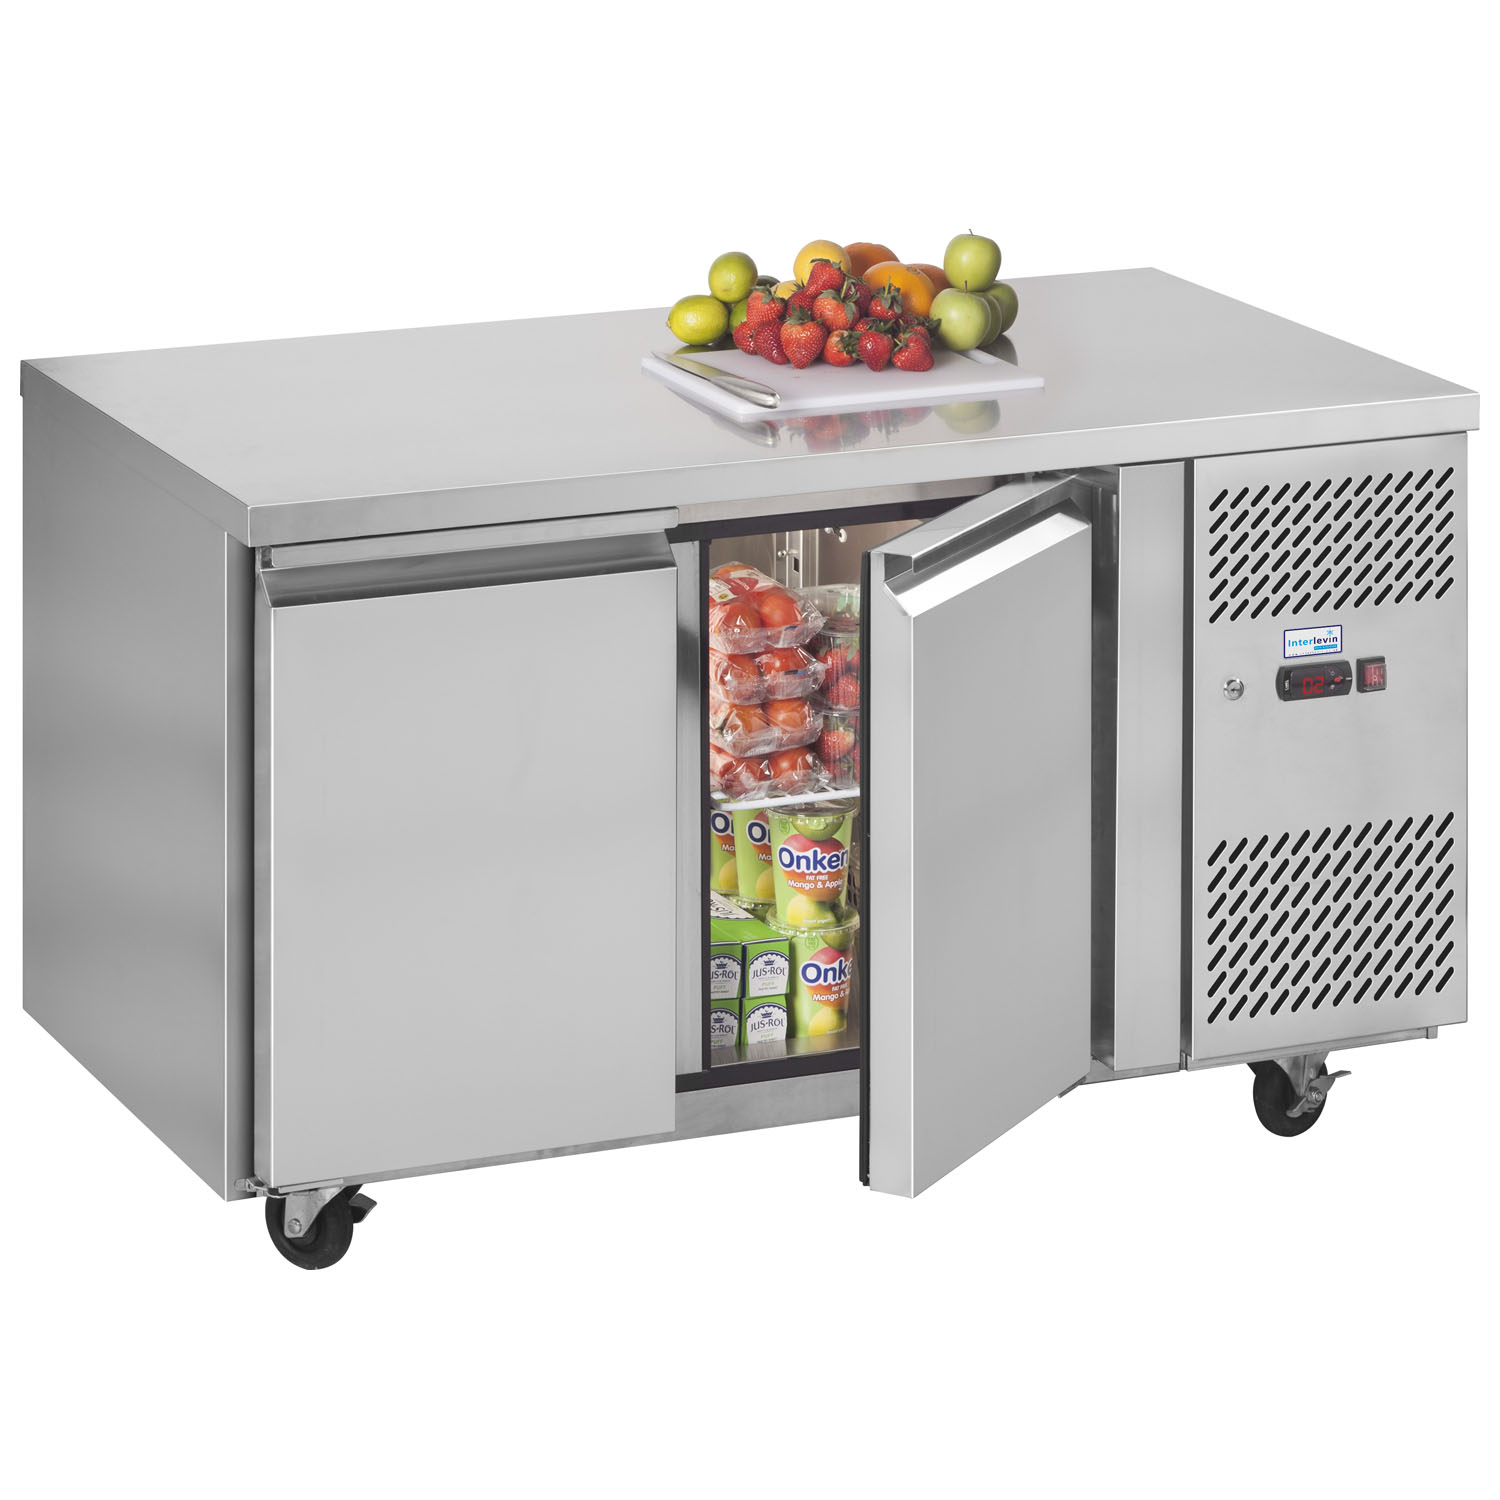 Interlevin PH20 Gastronorm Stainless Steel Counter 2-Door Chiller stocked